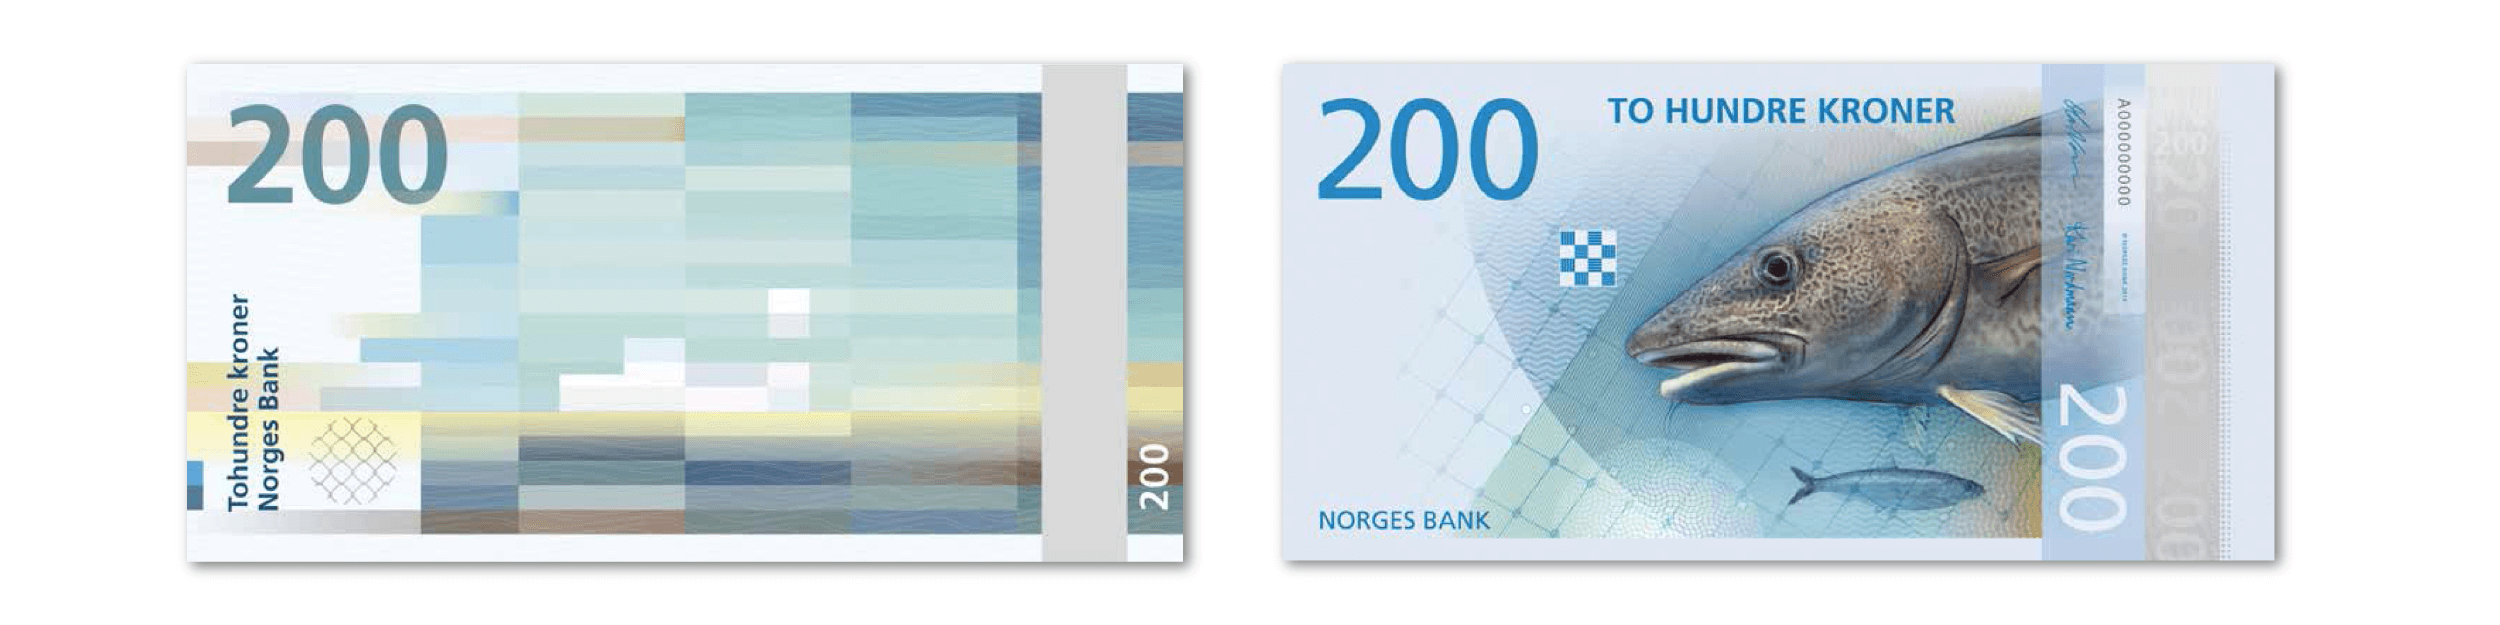 Norway Currency Redesign_200-kroner